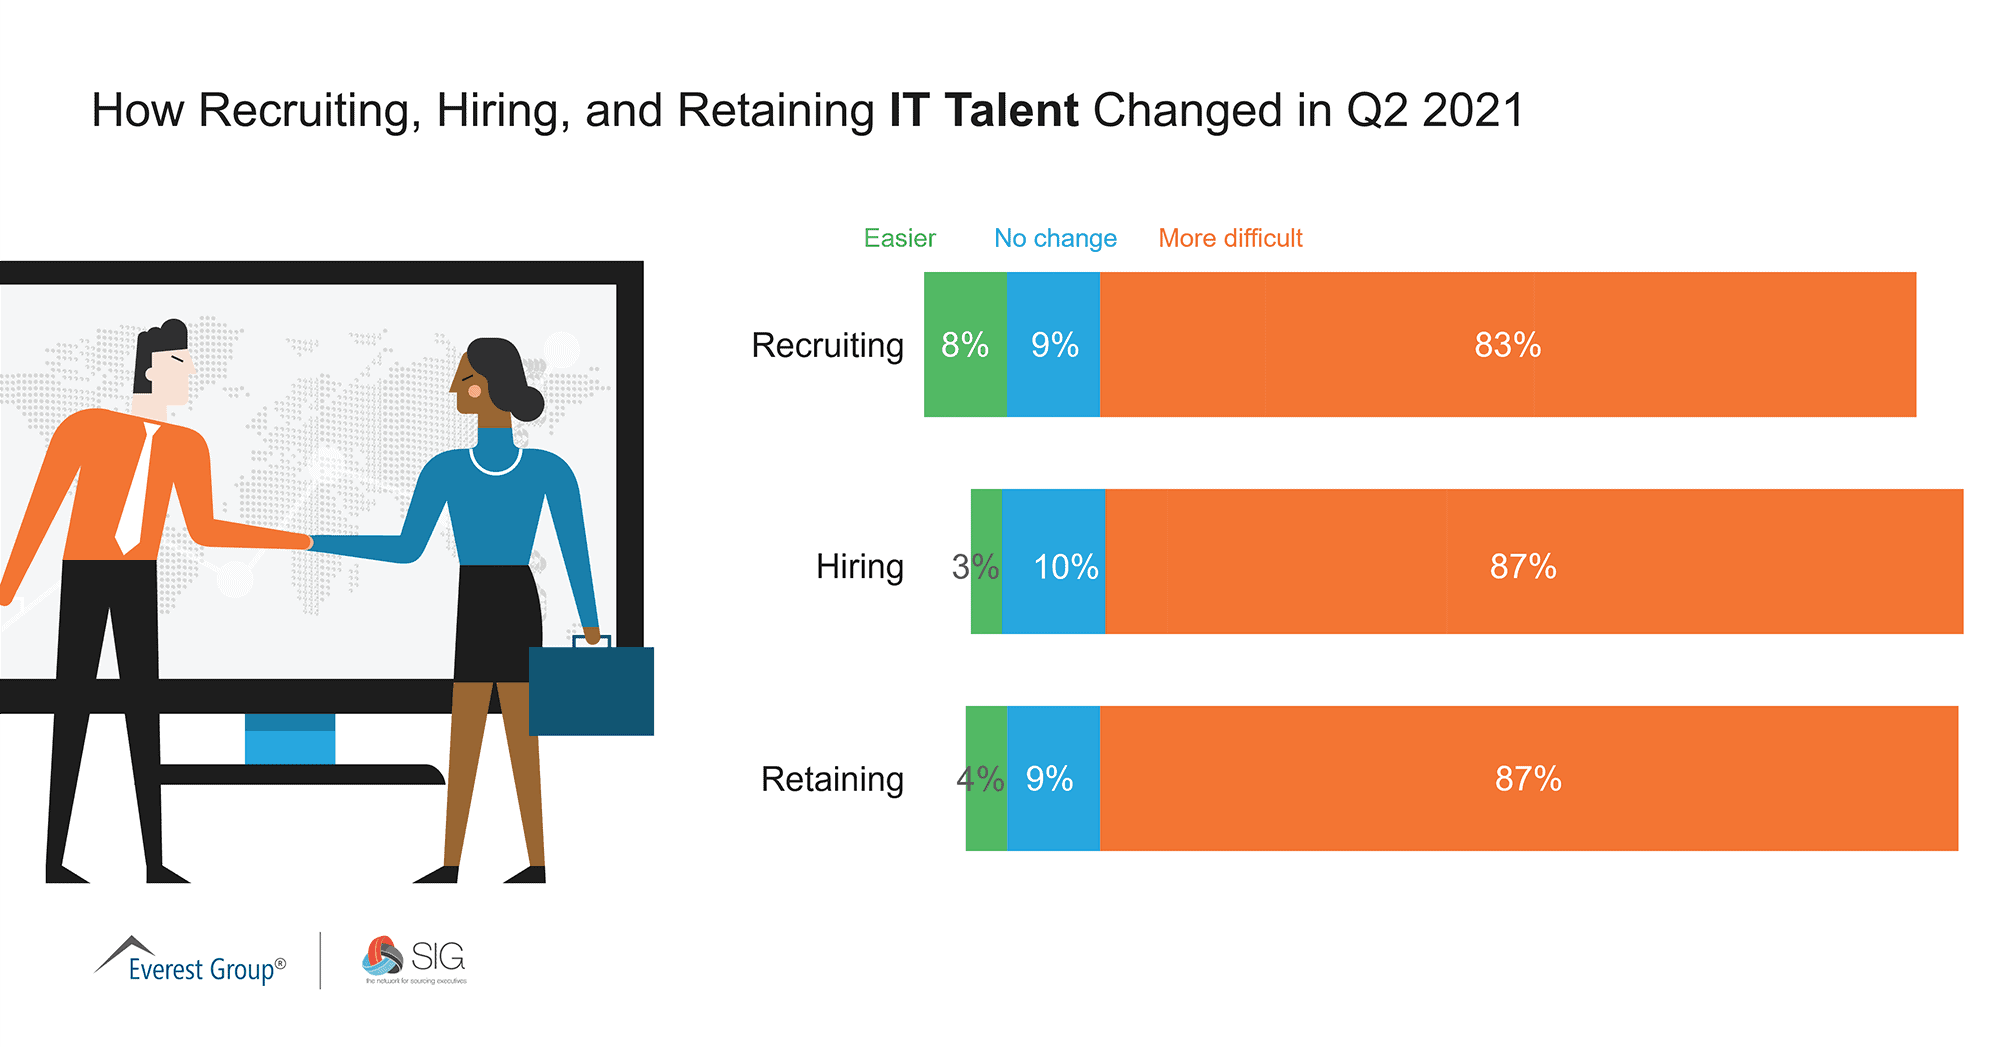 How Recruiting, Hiring, and Retaining IT Talent Changed in Q2 2021